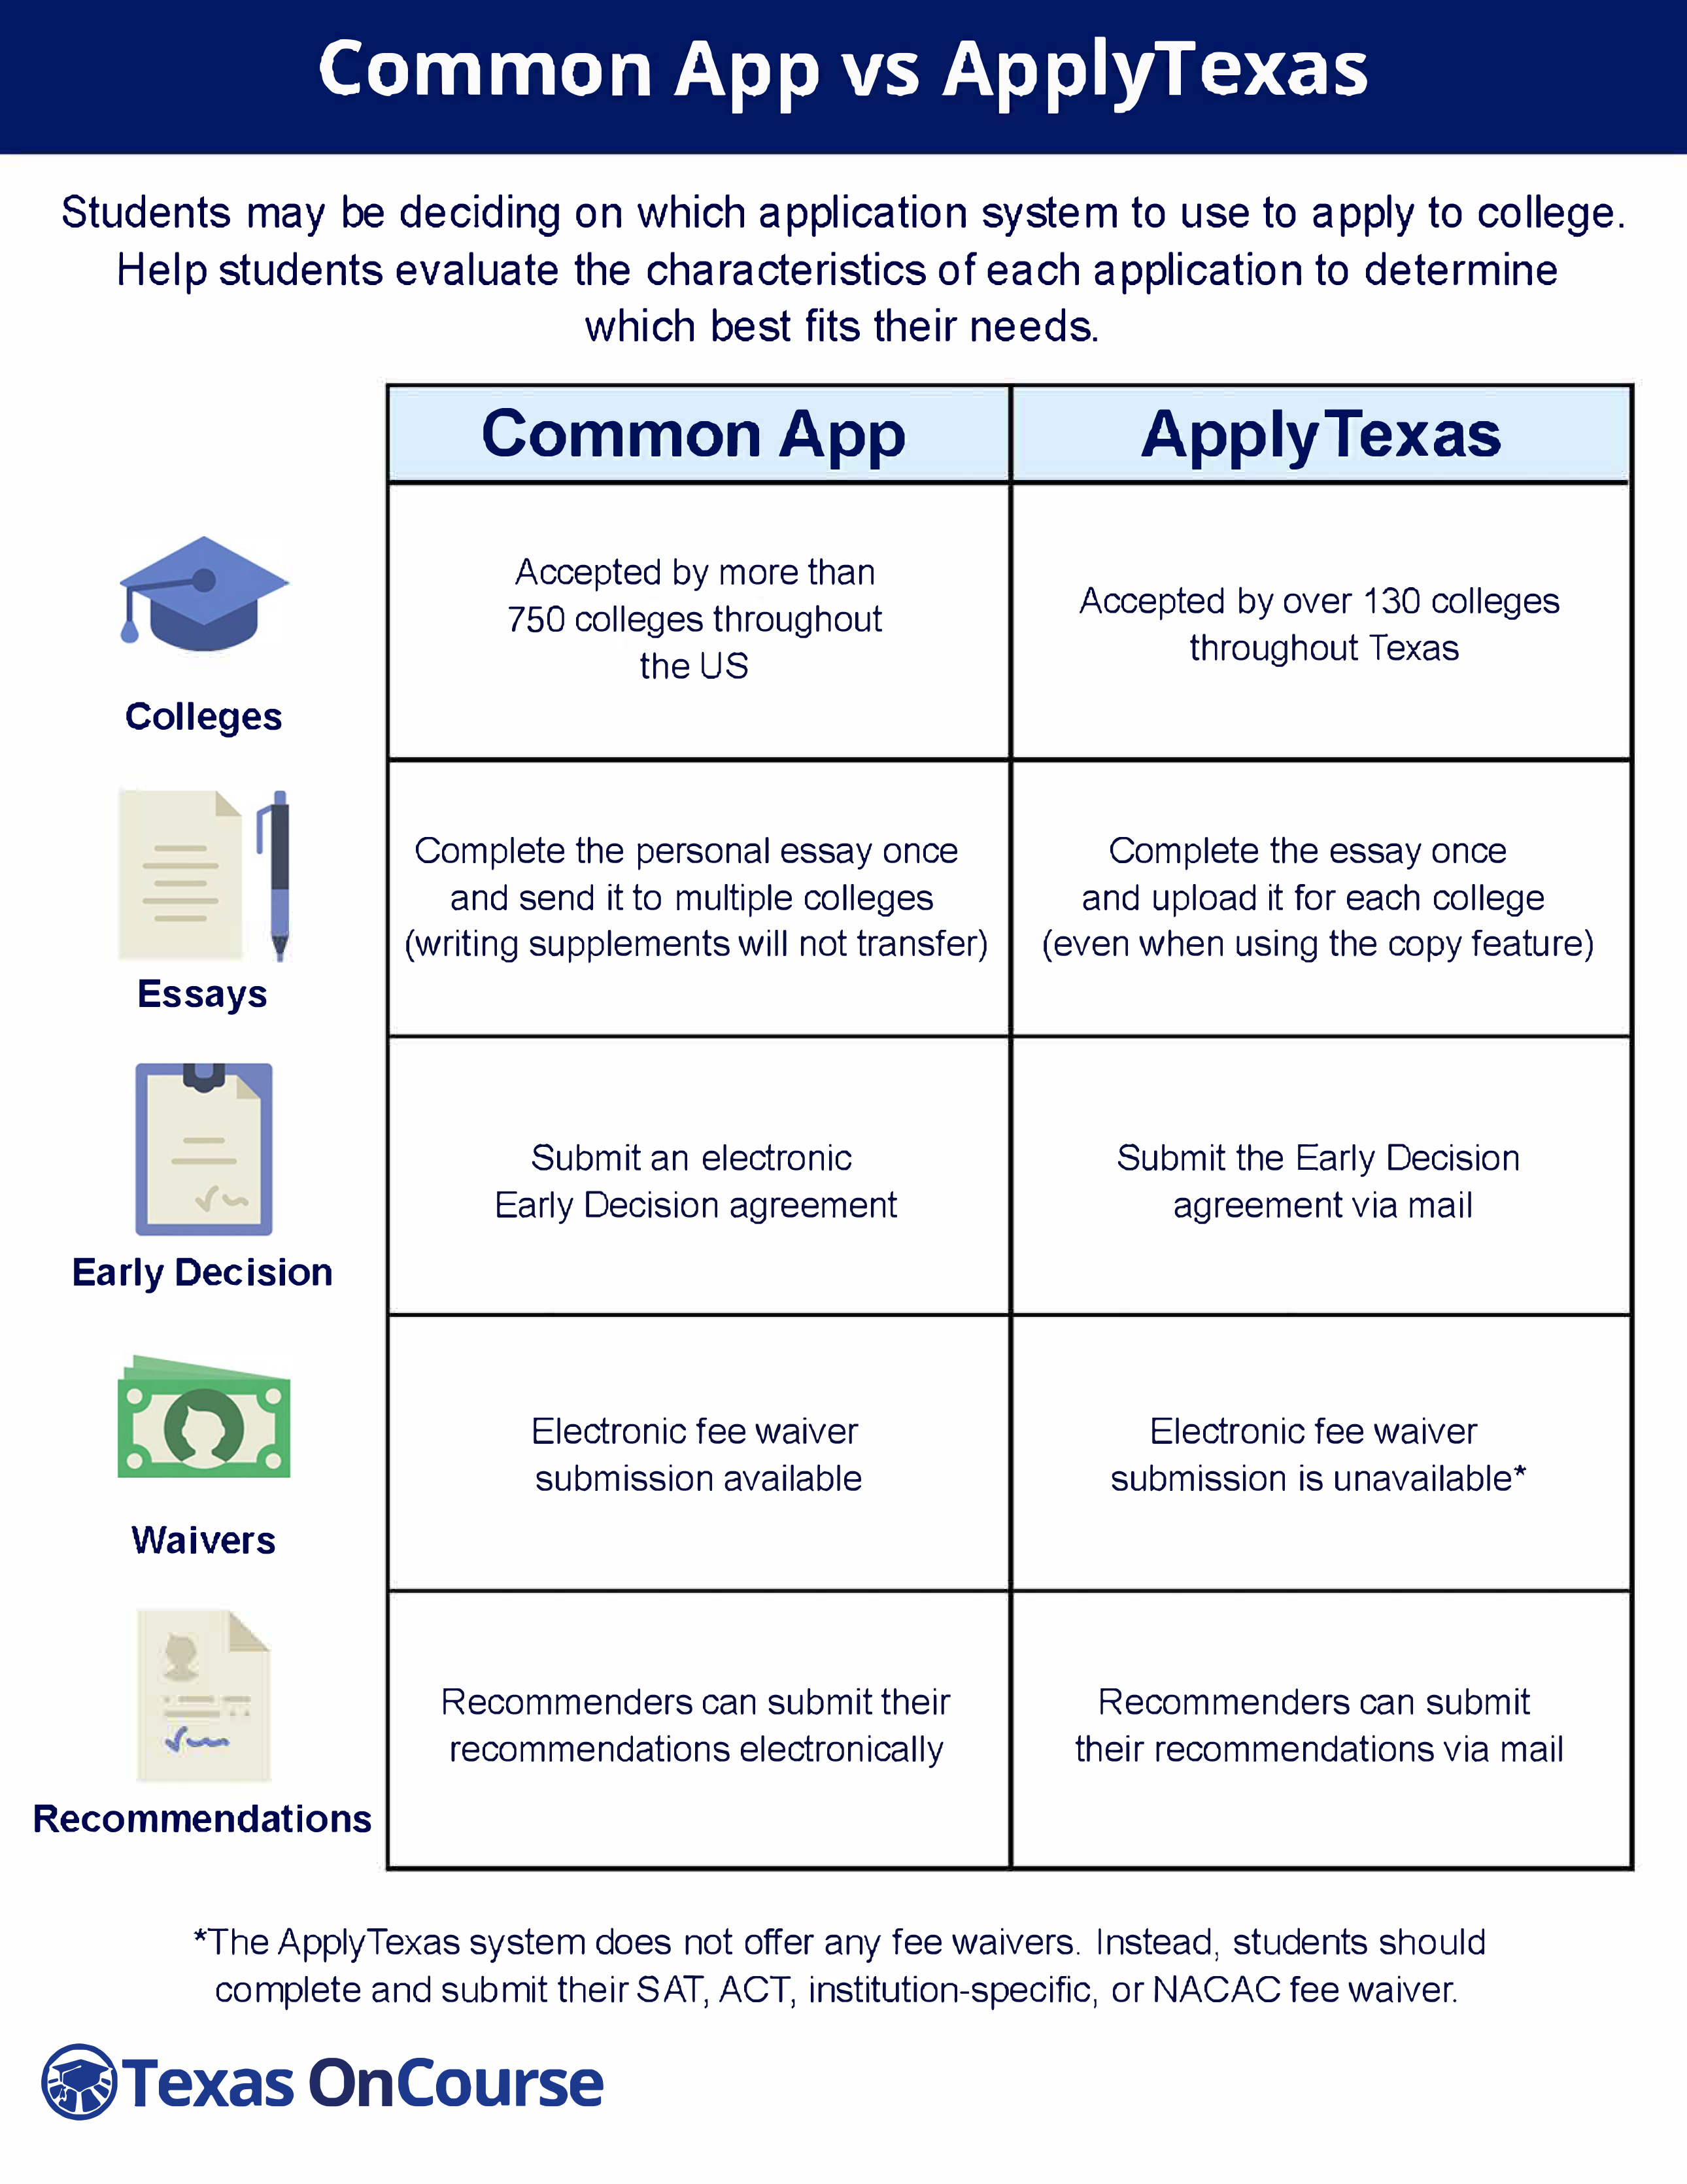 020 Essay Example Apply Texas Word Limit Common App Vs Applytexaswidth386 Frightening Requirements 2017 2019 Full